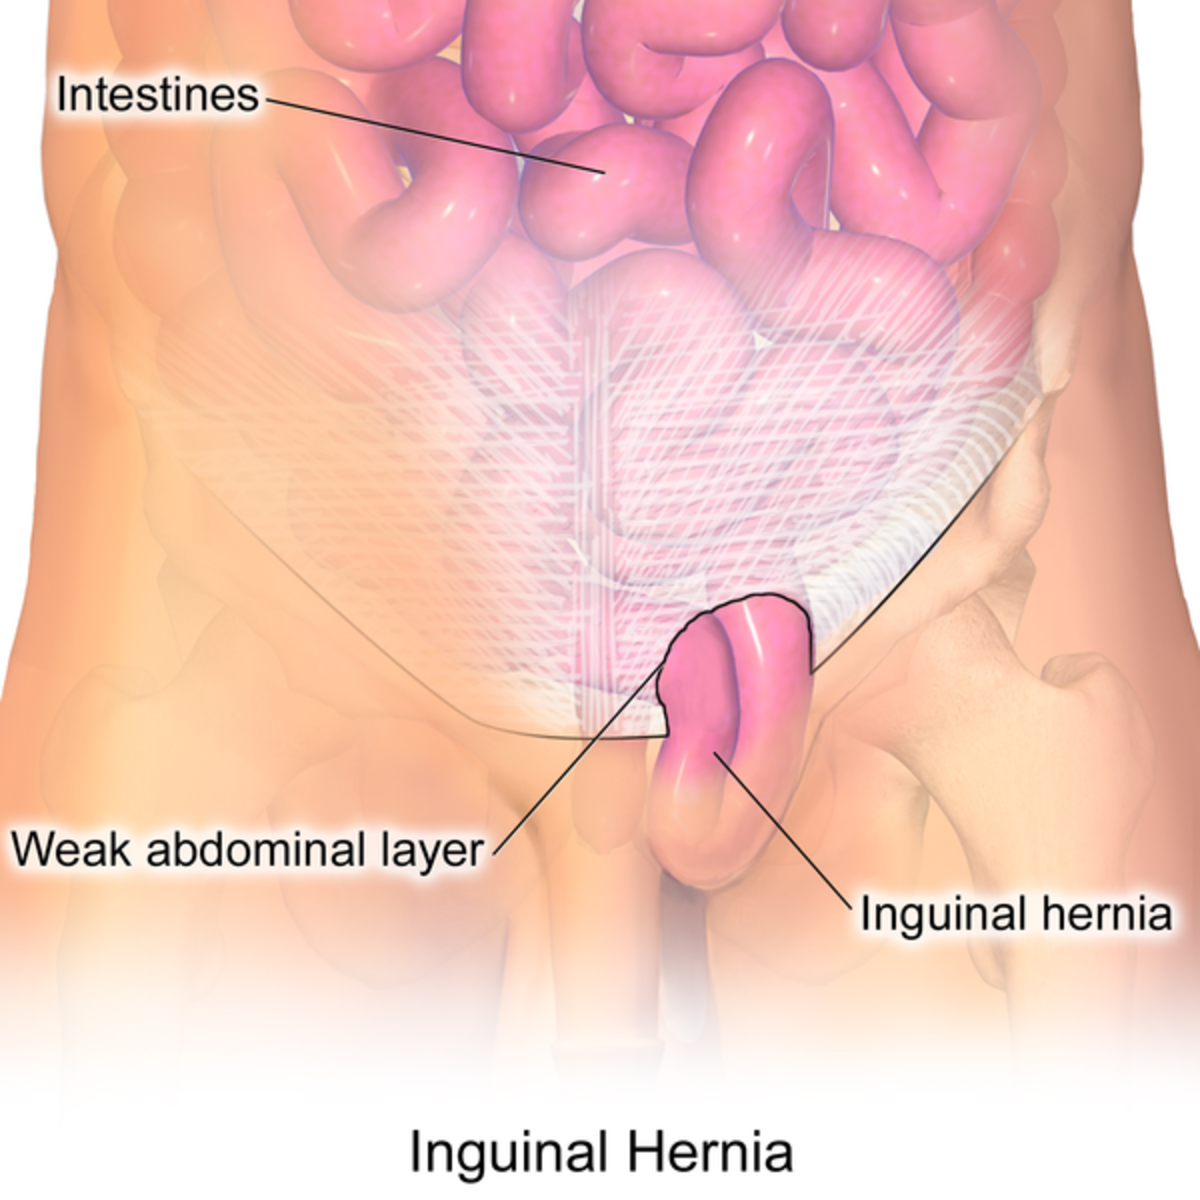 Diagram of an inguinal hernia (CC BY 3.0).